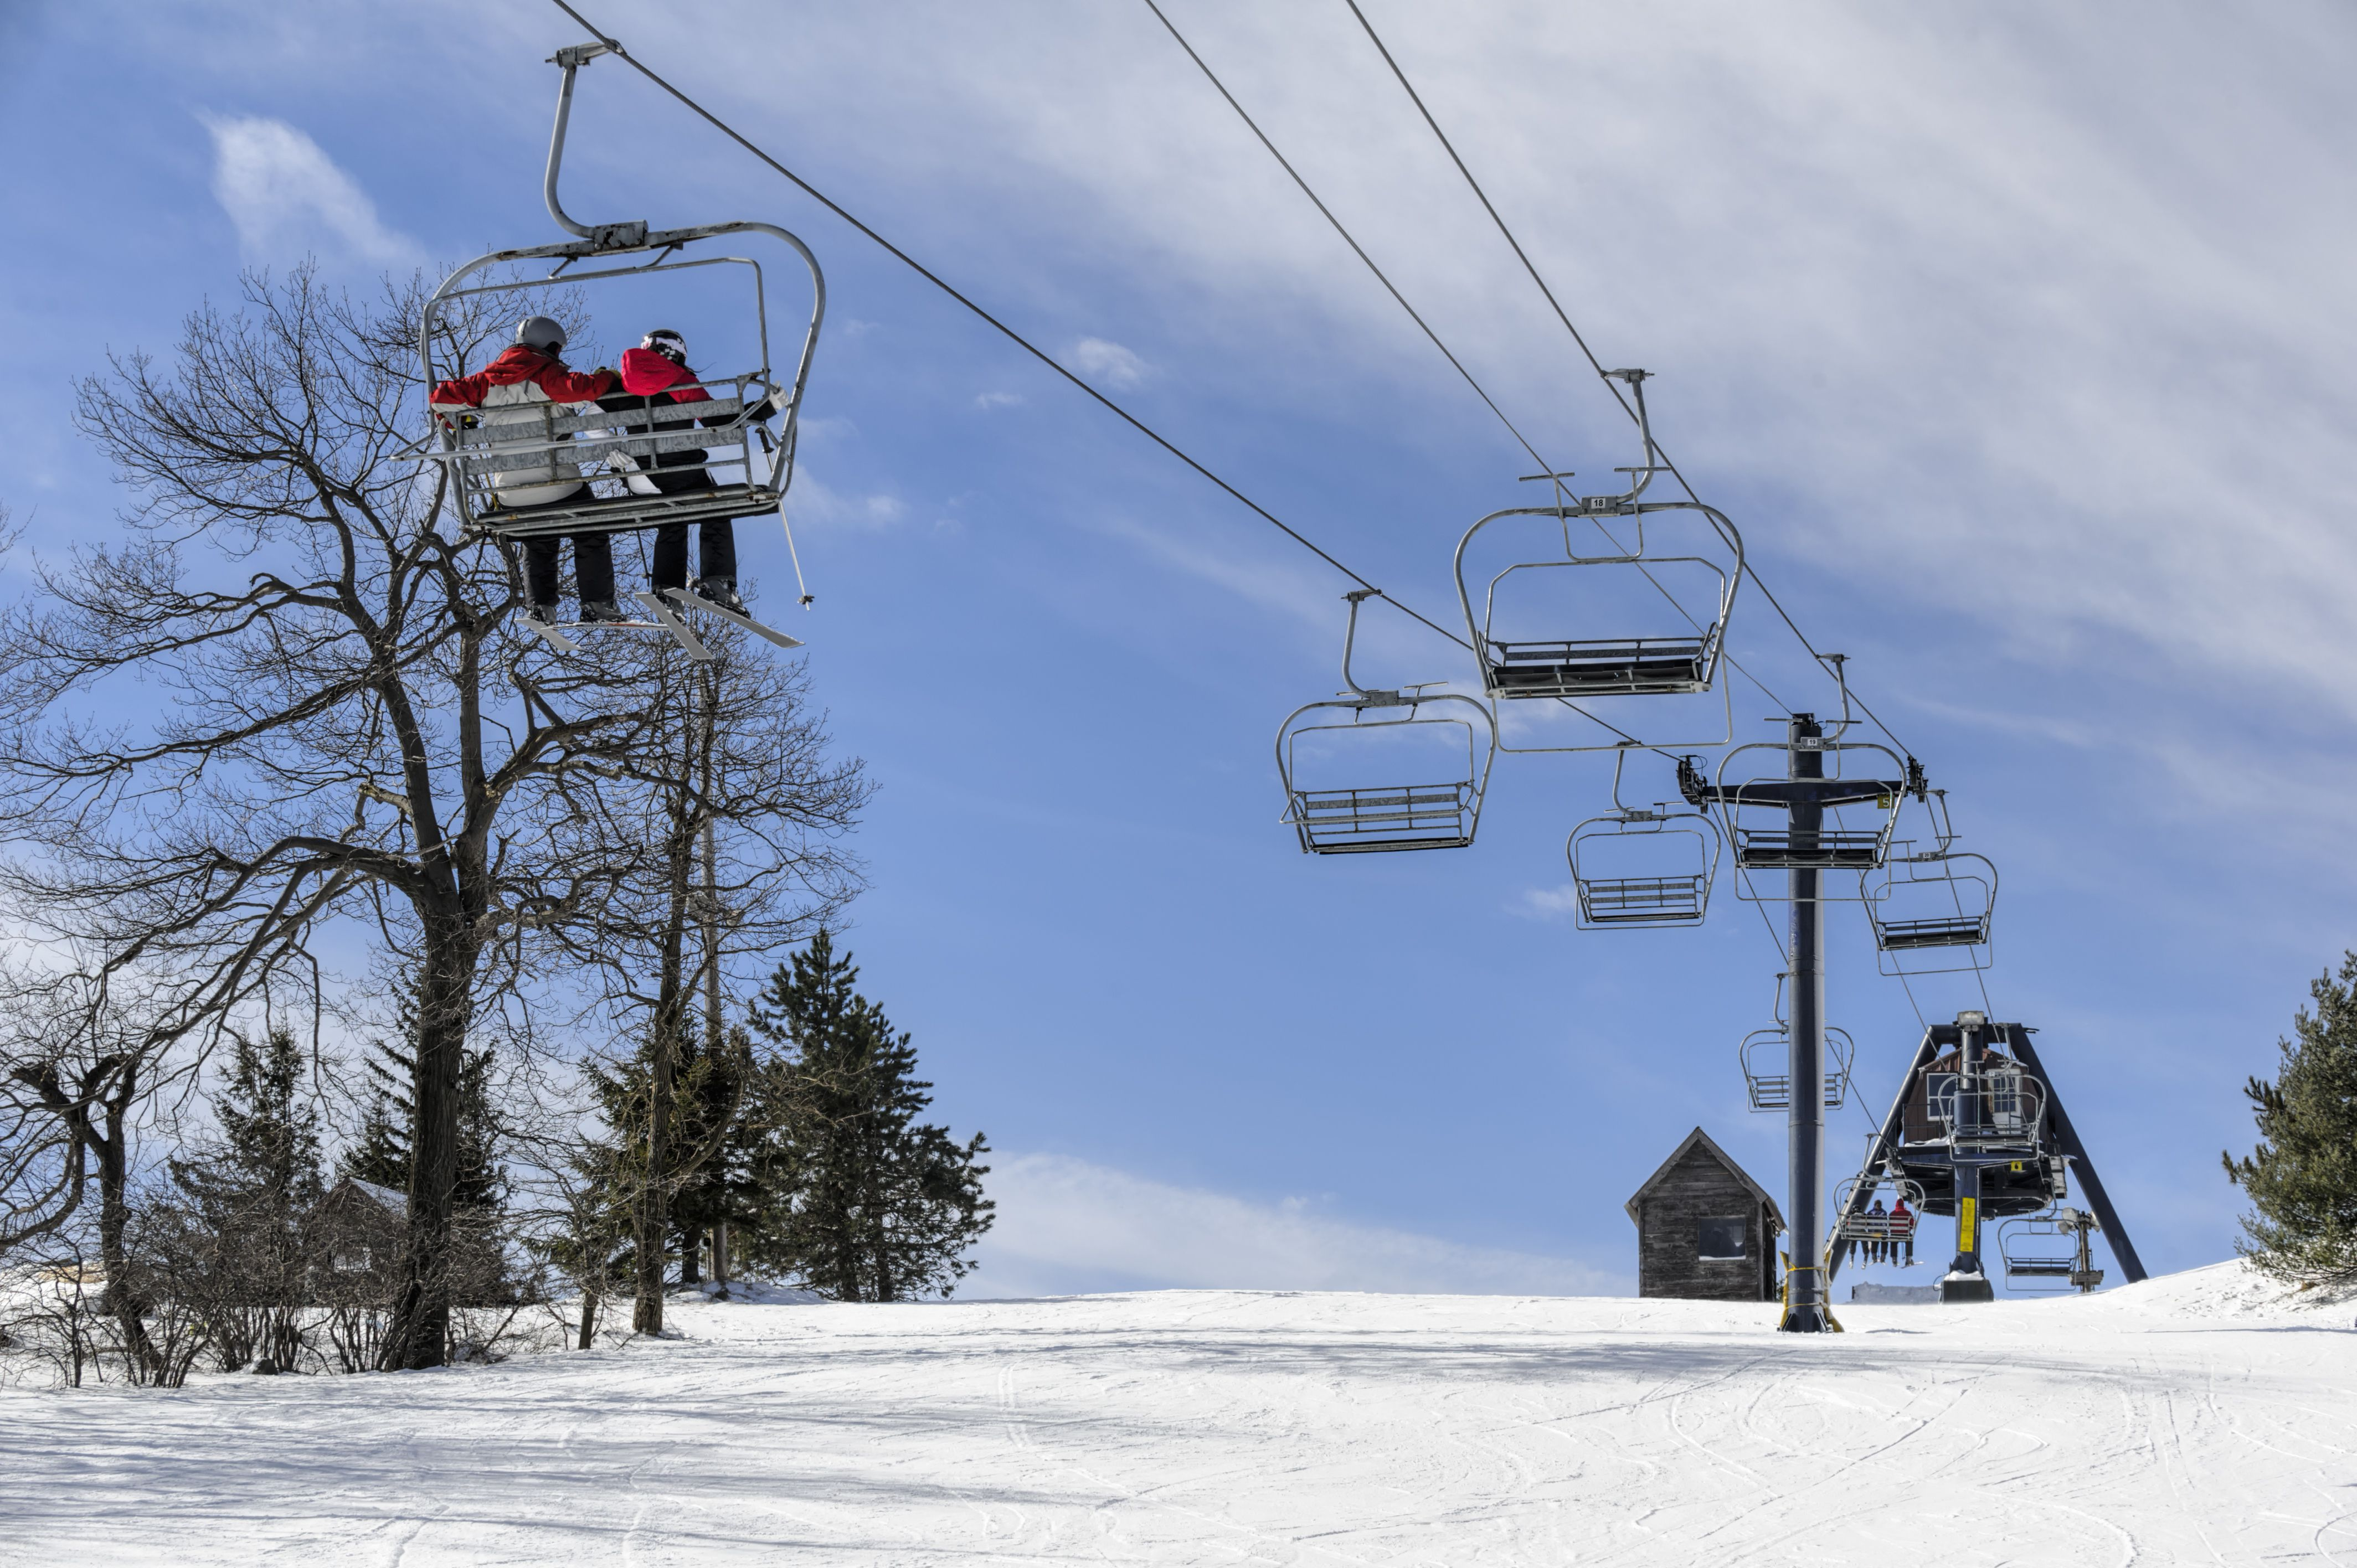 10 pittsburgh area skiing and snowboarding resorts